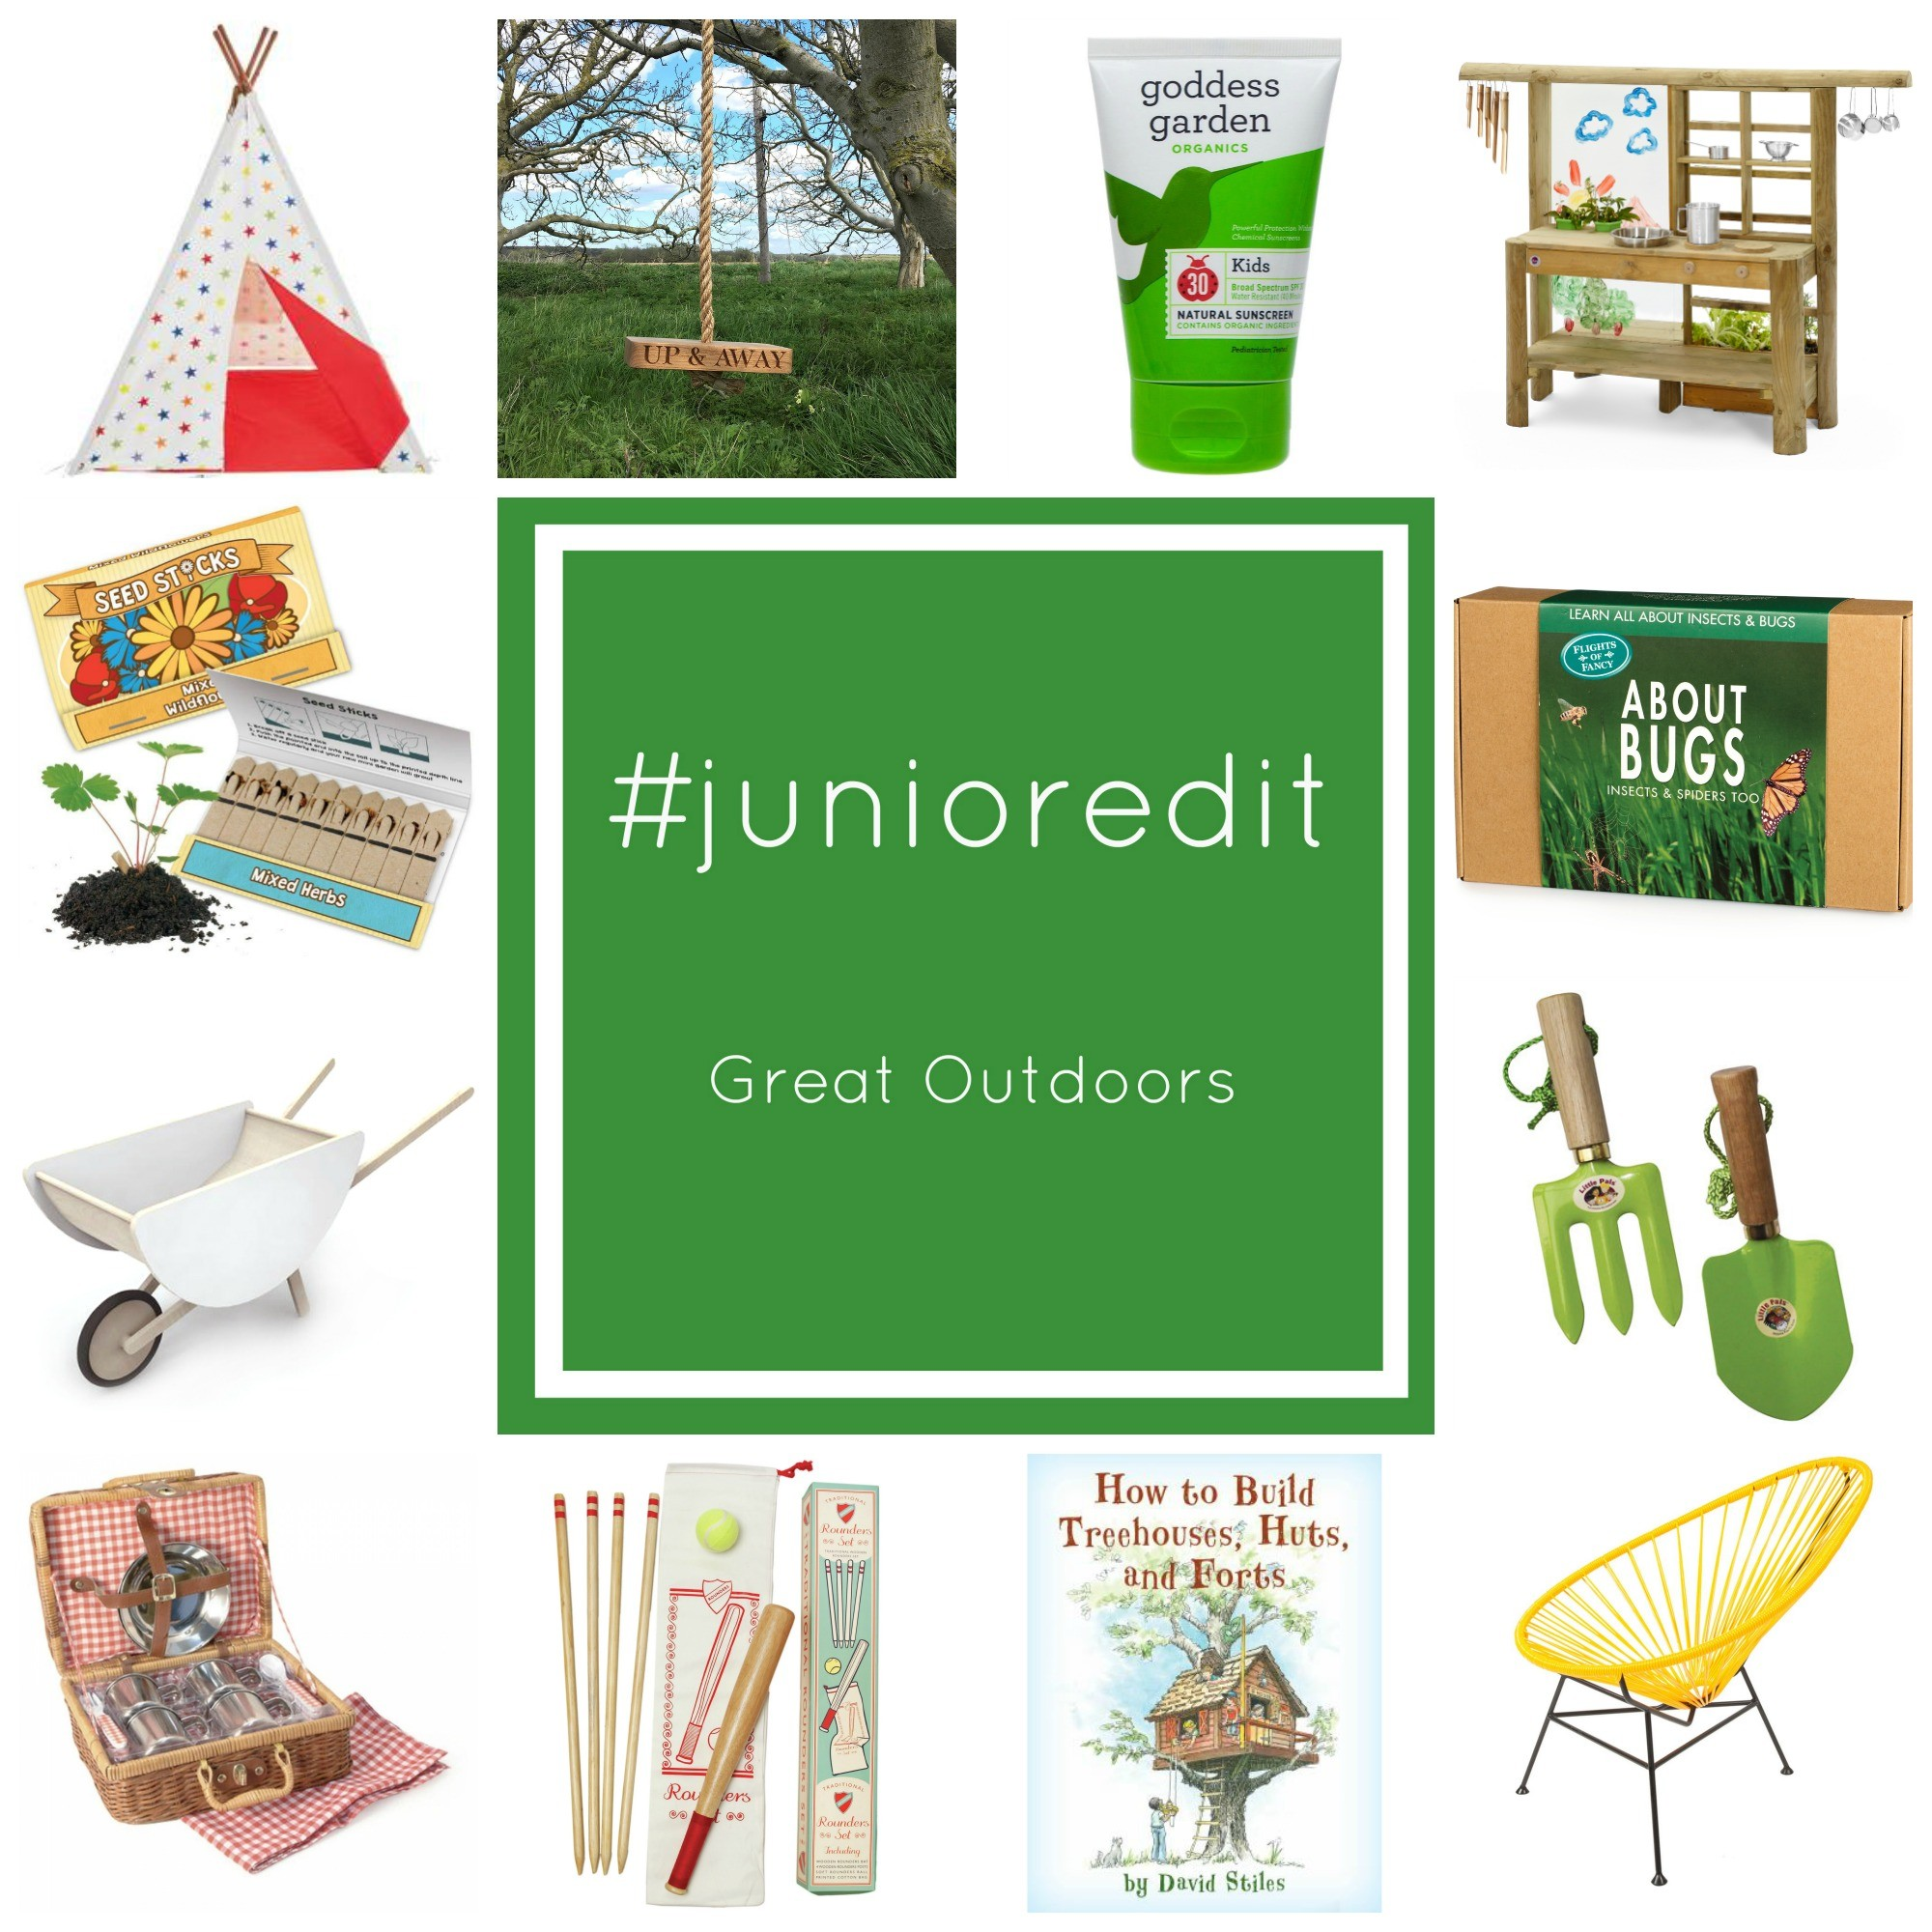 Great Outdoors | Junior Edit